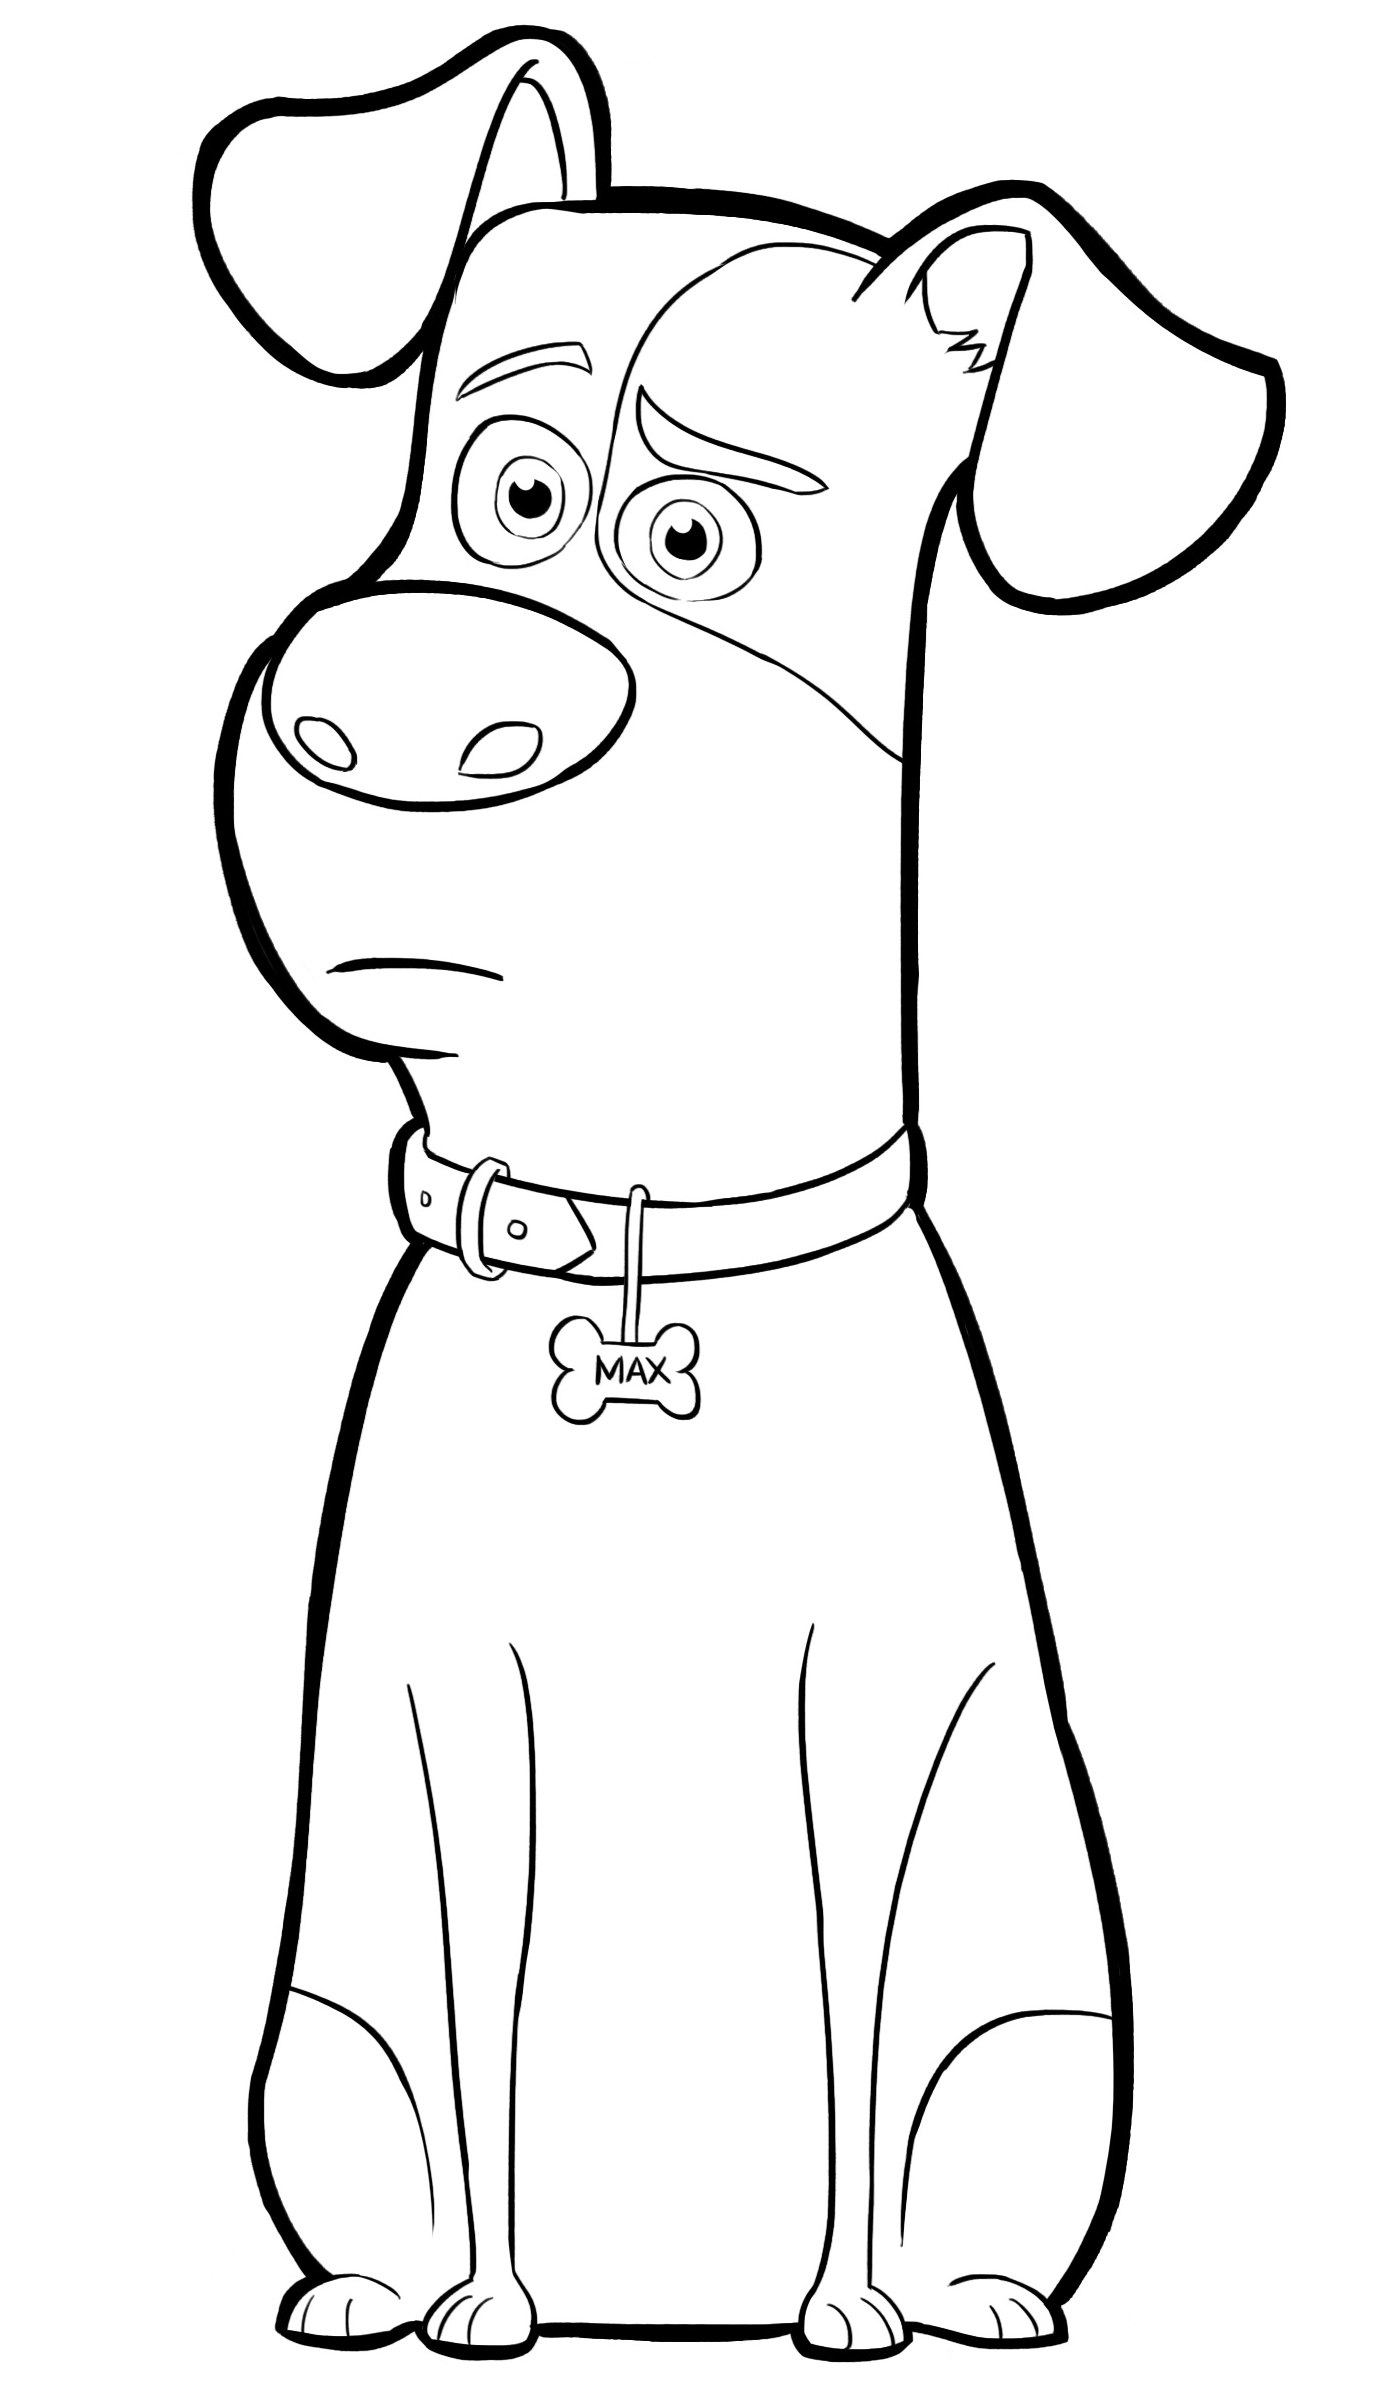 coloring template coloring for kids free printable veggie tales coloring pages for kids coloring for coloring kids template